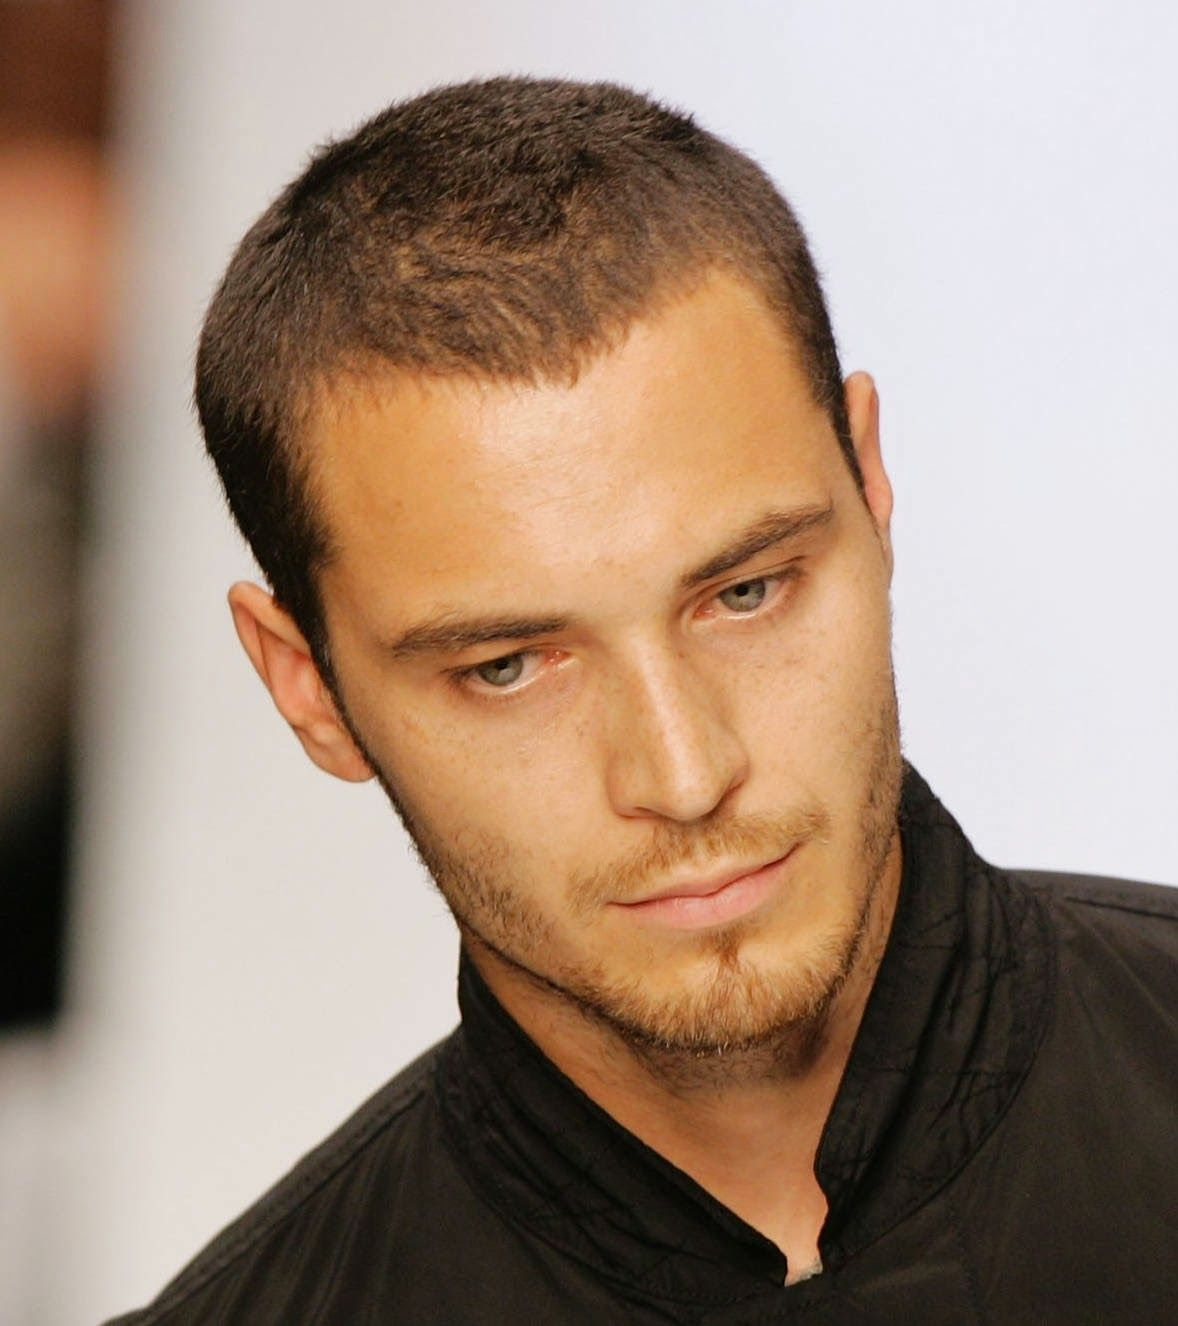 Short haircuts for balding men hairstyles for short hair mens   hairstyles for short hair